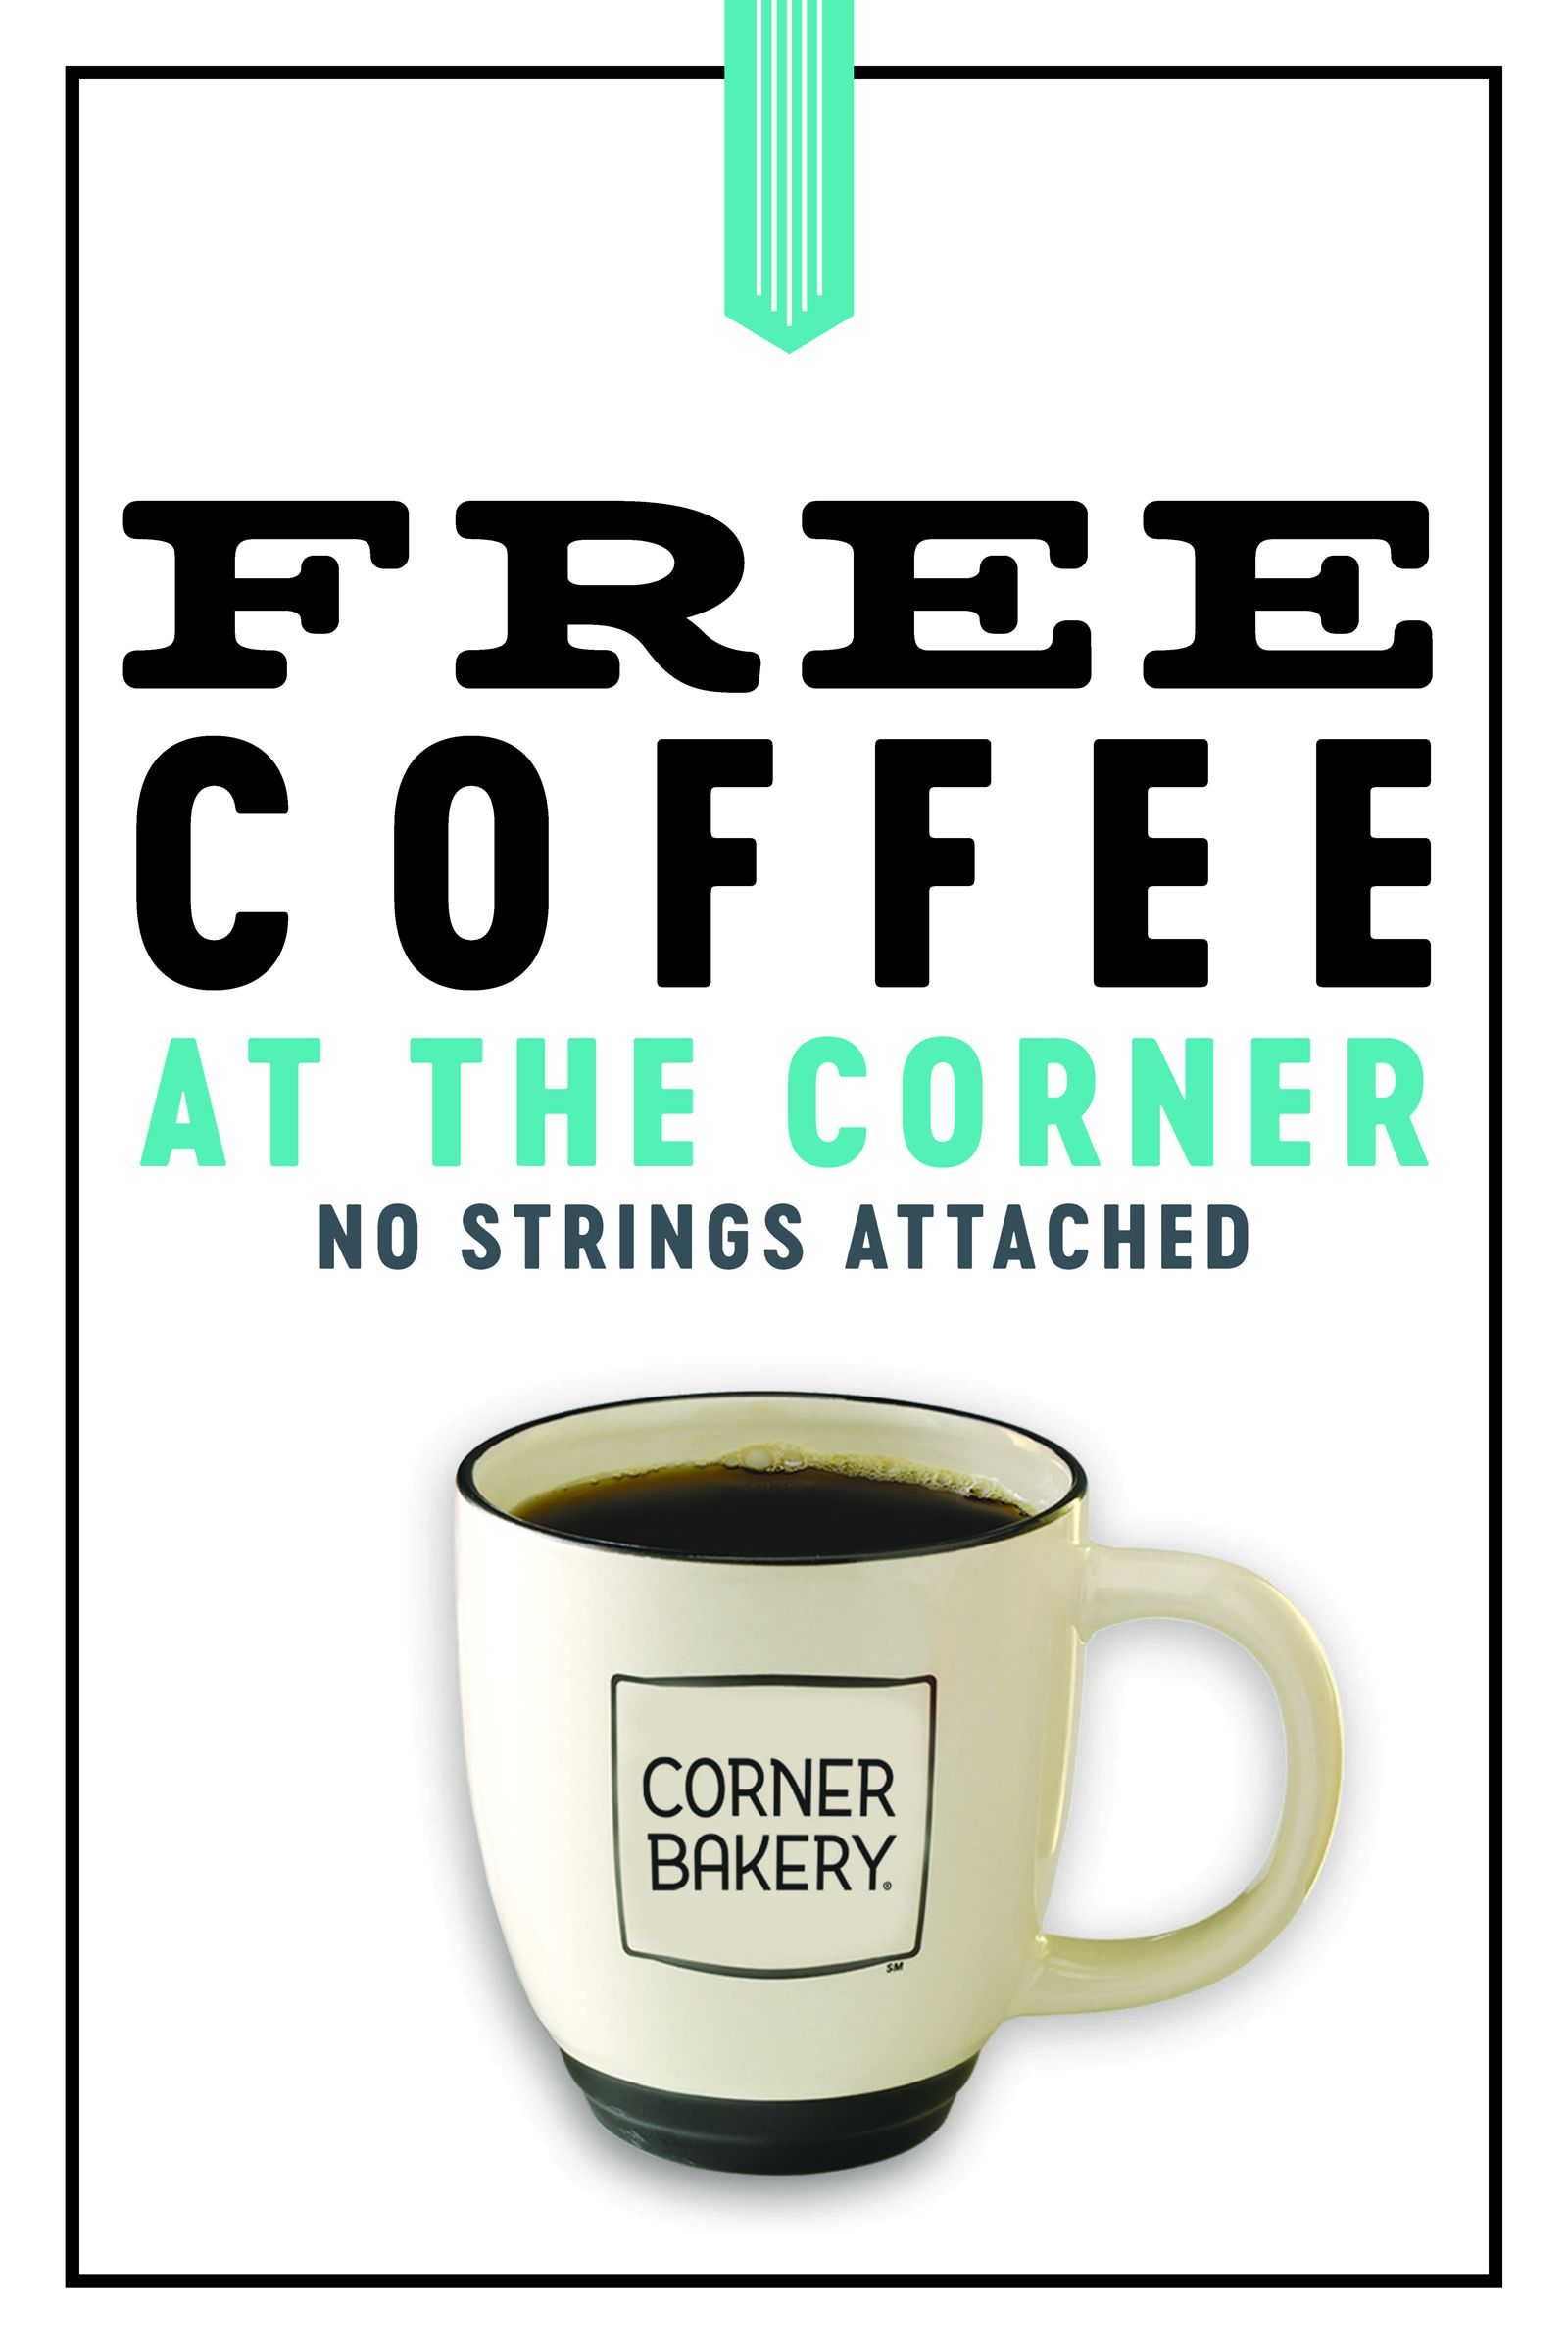 Corner Bakery is Serving Up 'Free Coffee at the Corner' - No Subscriptions or Strings Attached! Through the End of 2020